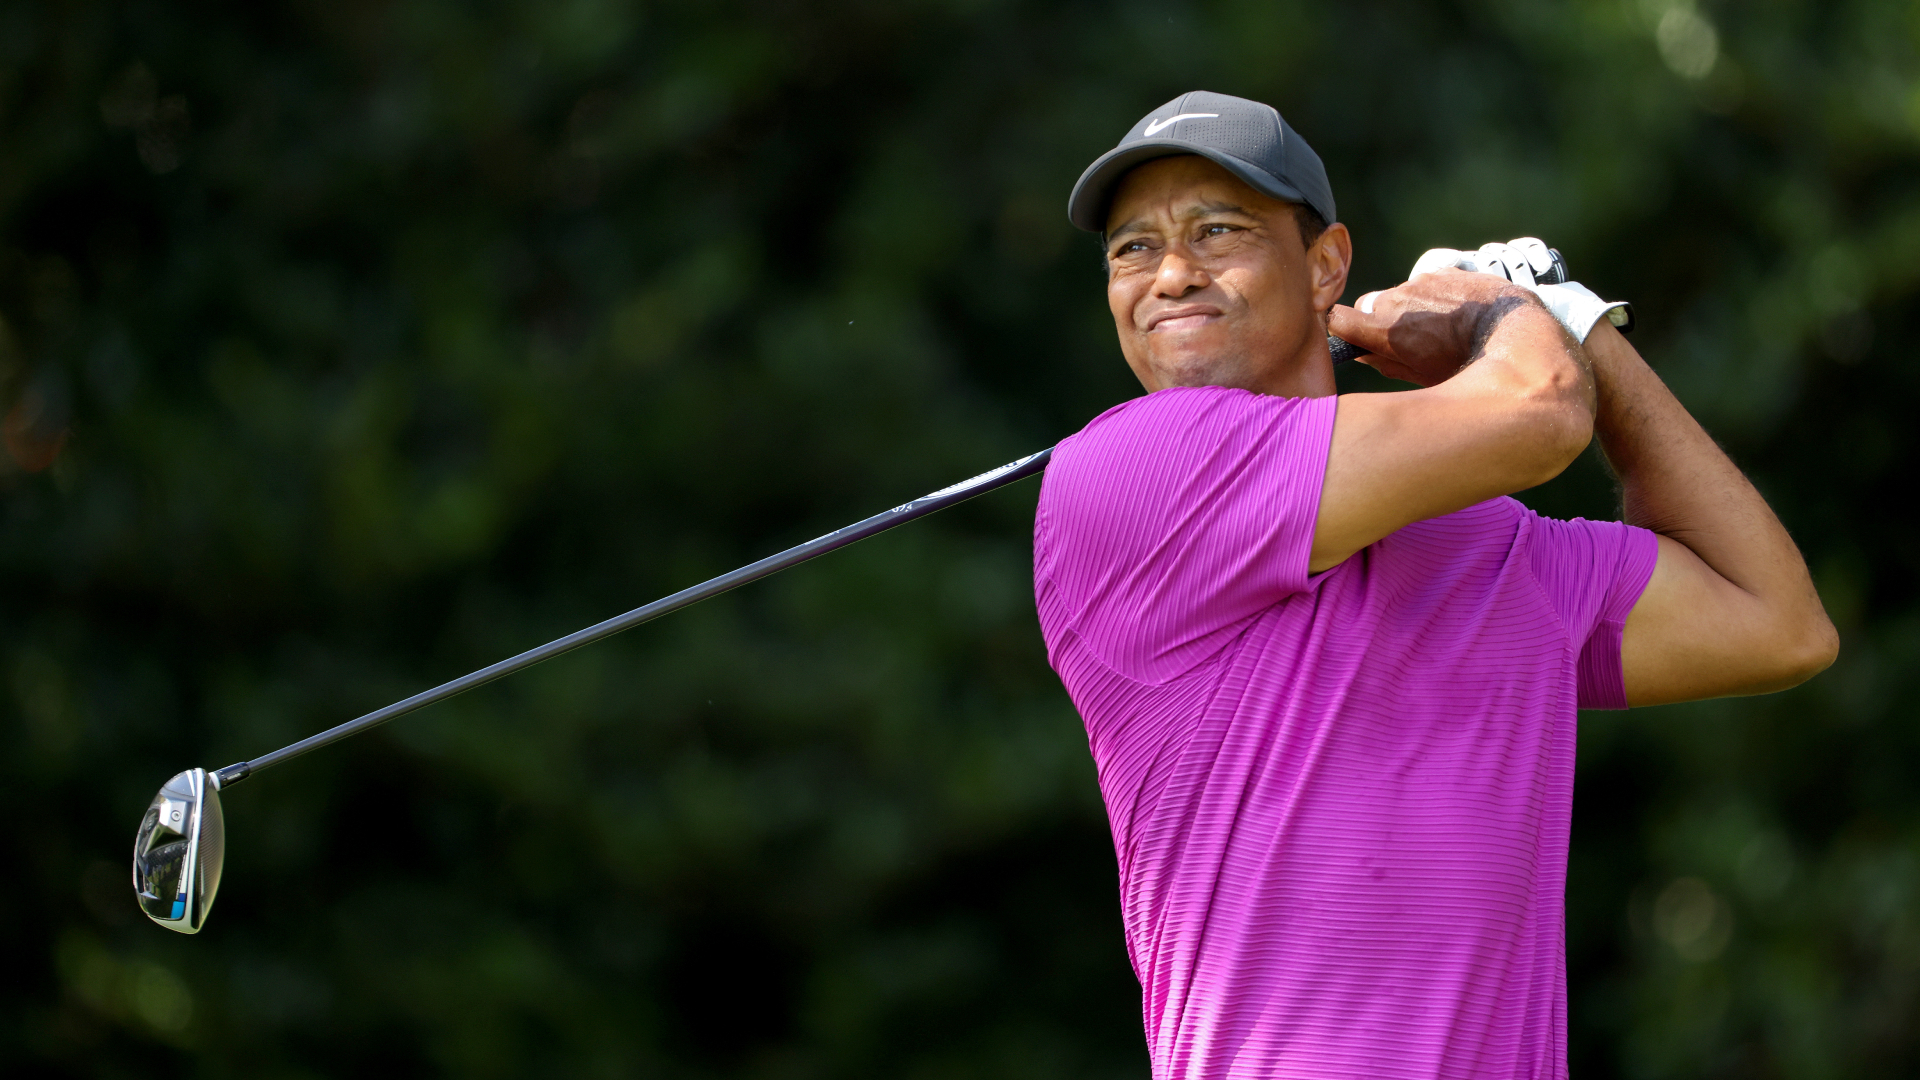 Tiger Woods live score, results, highlights from Saturday's Round 3 at the Masters